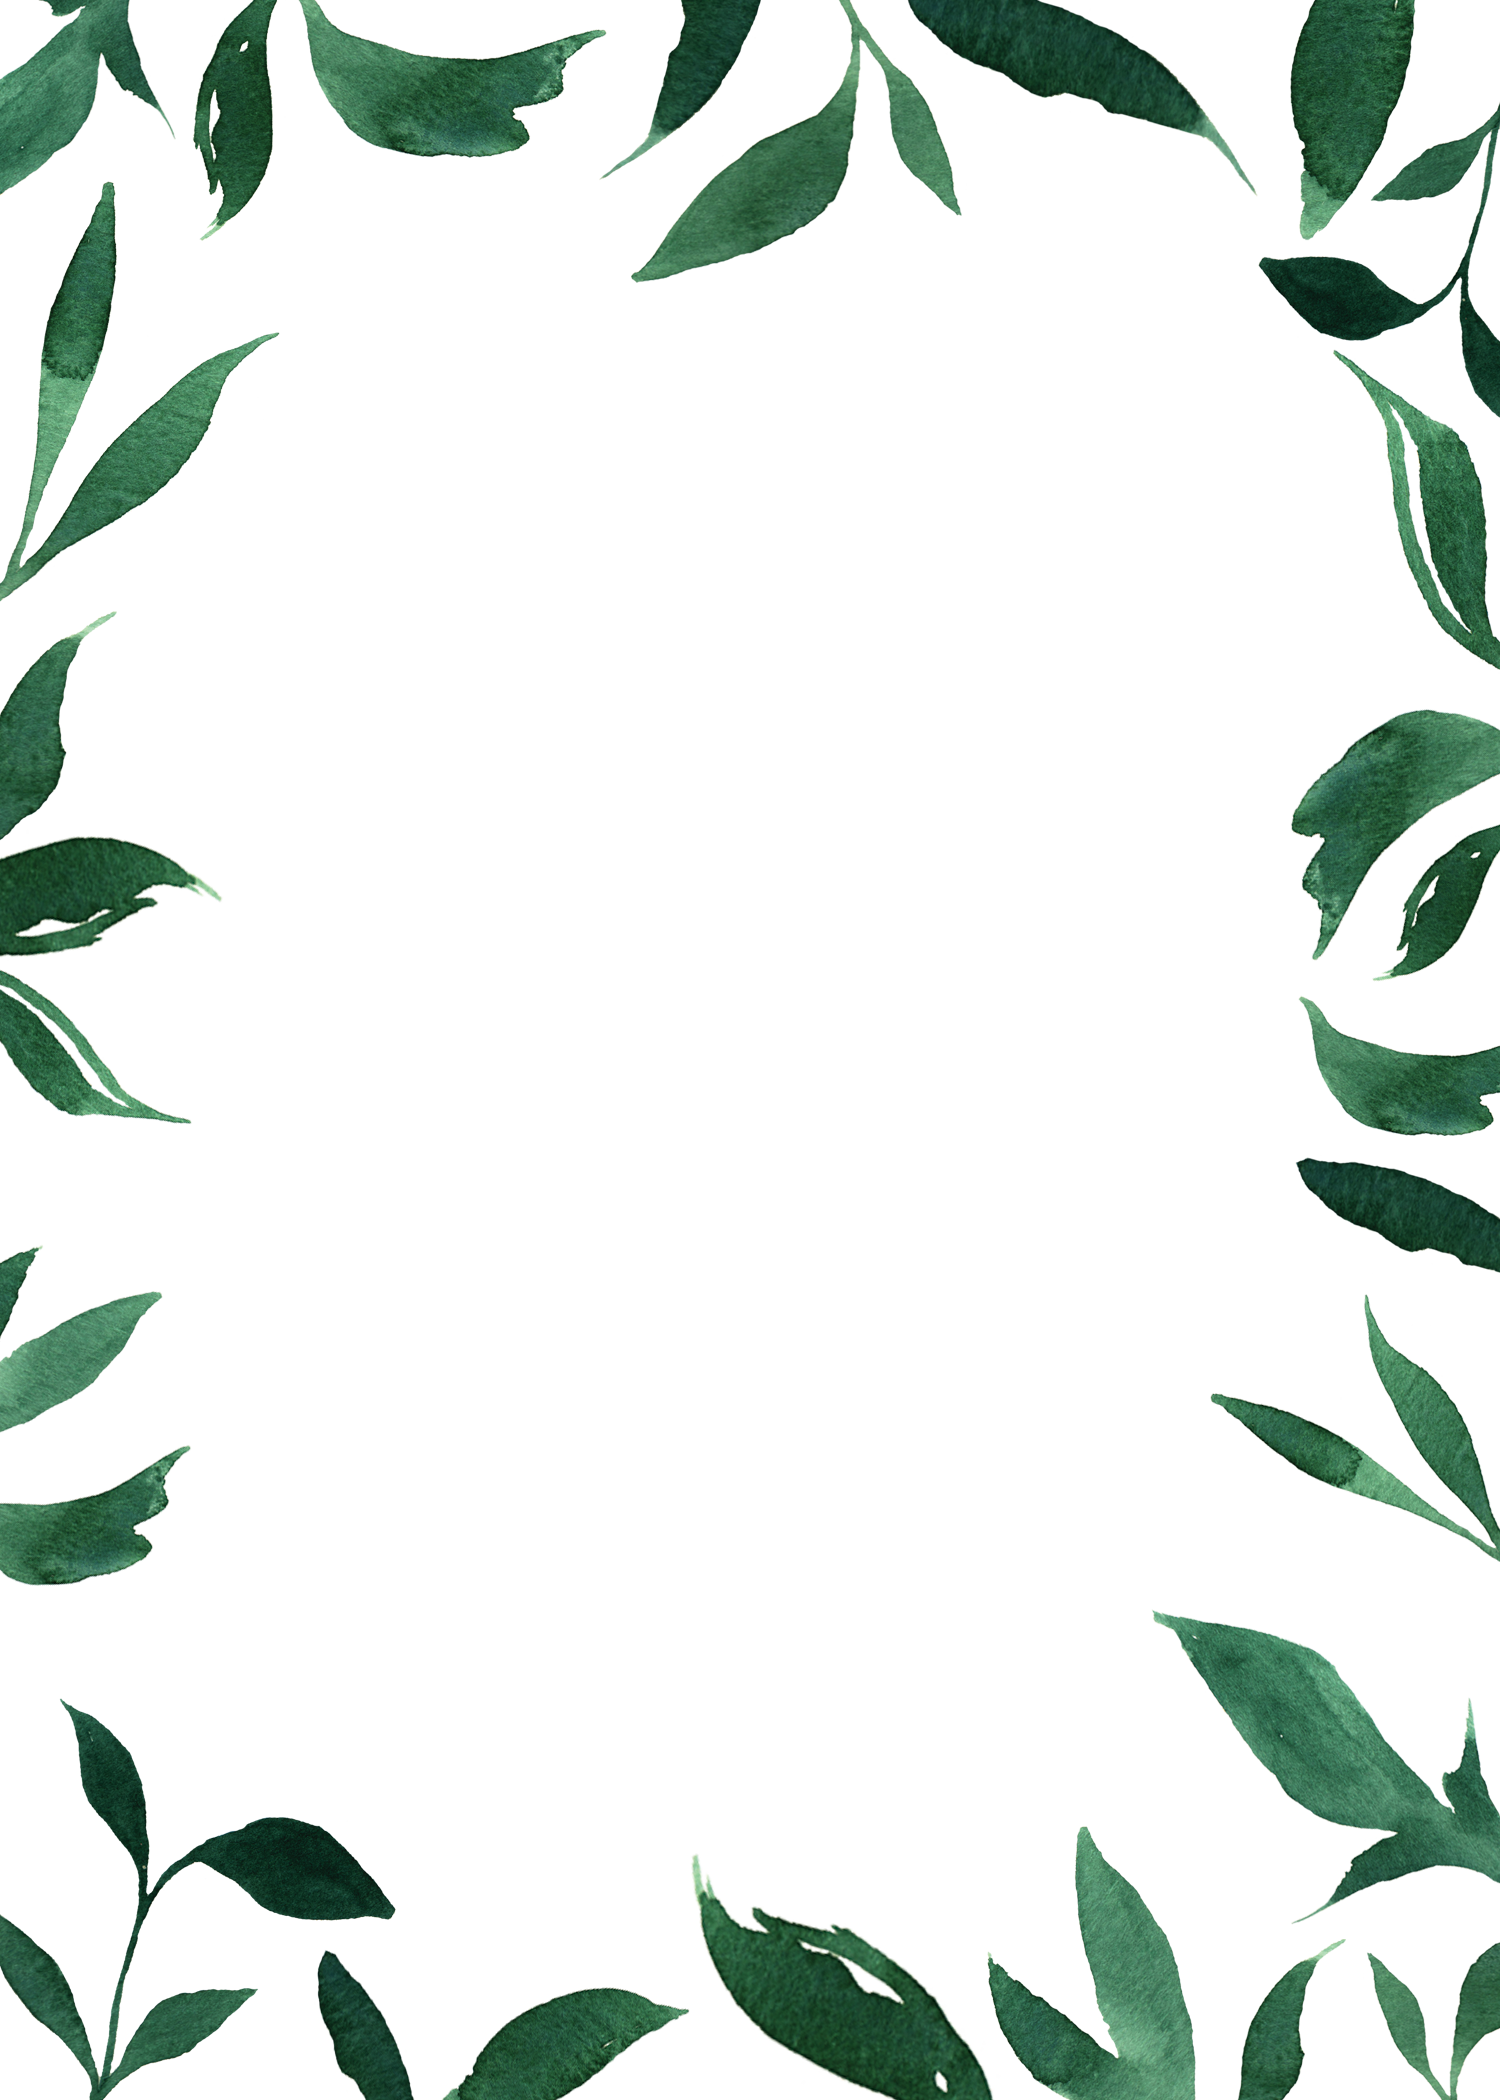 Summer border png. Borders picture transparent